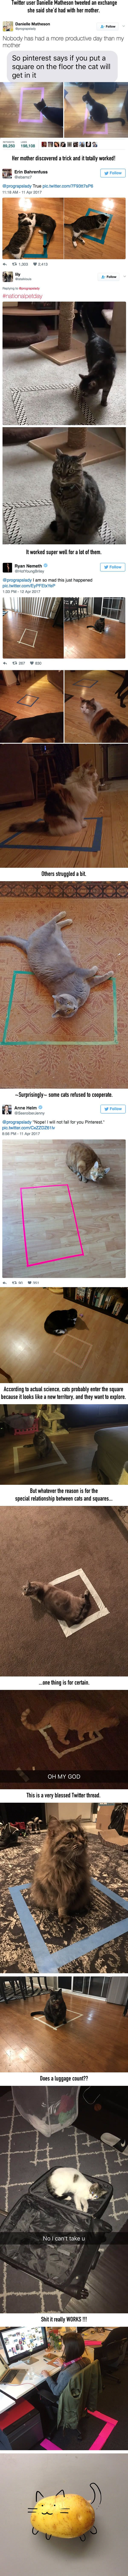 People Have Discovered The Perfect Way To Mess With Your Cat